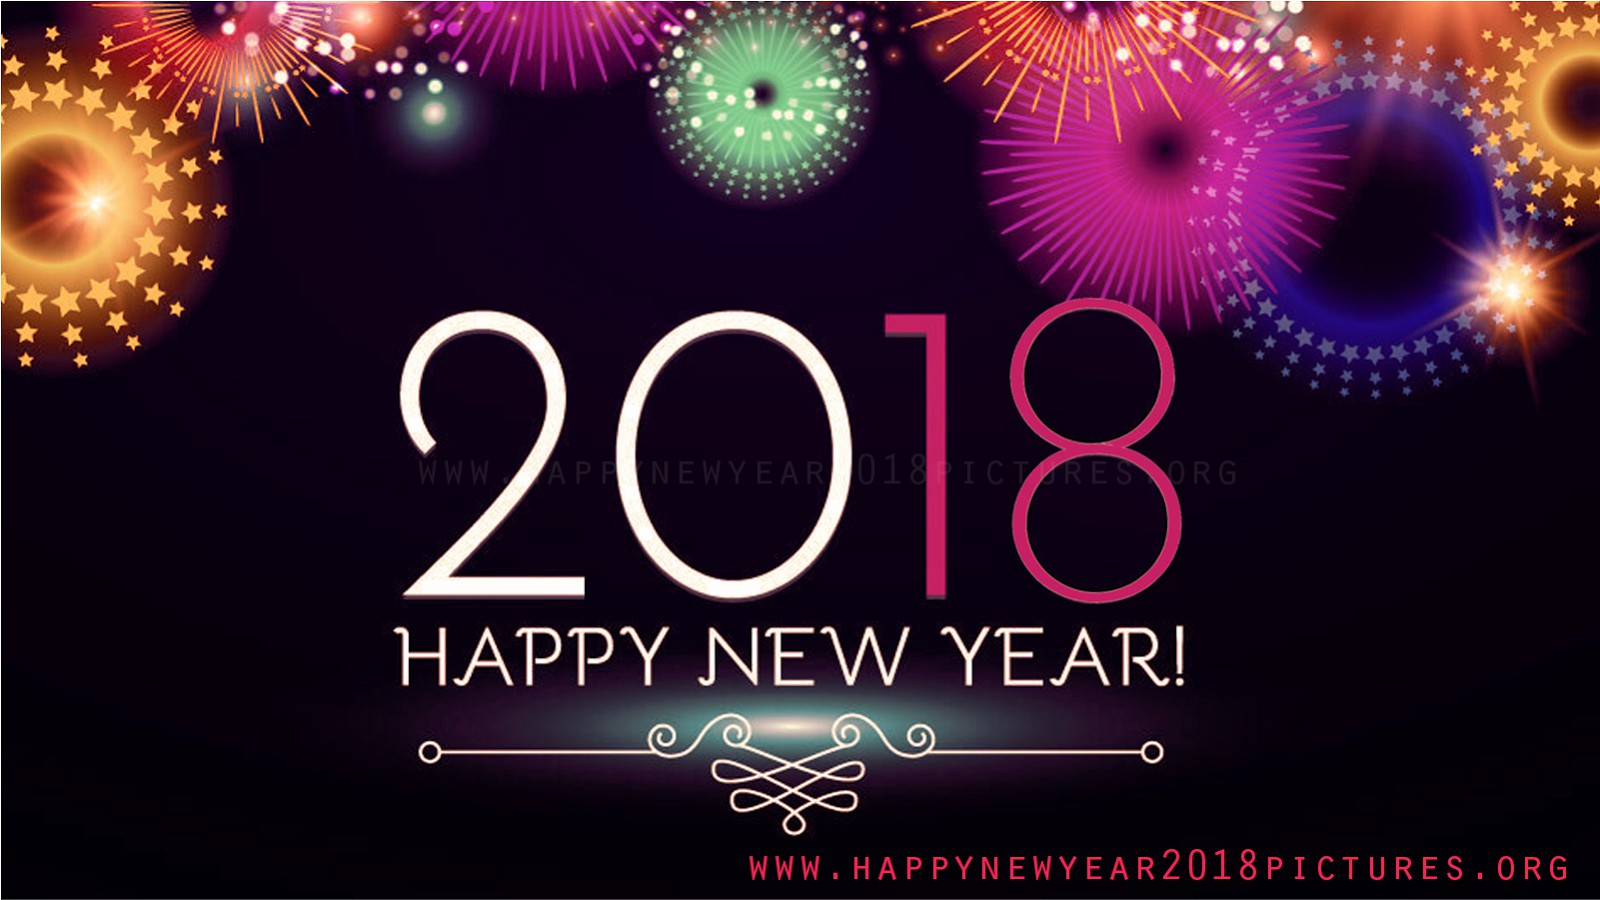 Happy New Year 2018 Images Pics Hd Wallapaper Imei Tracker